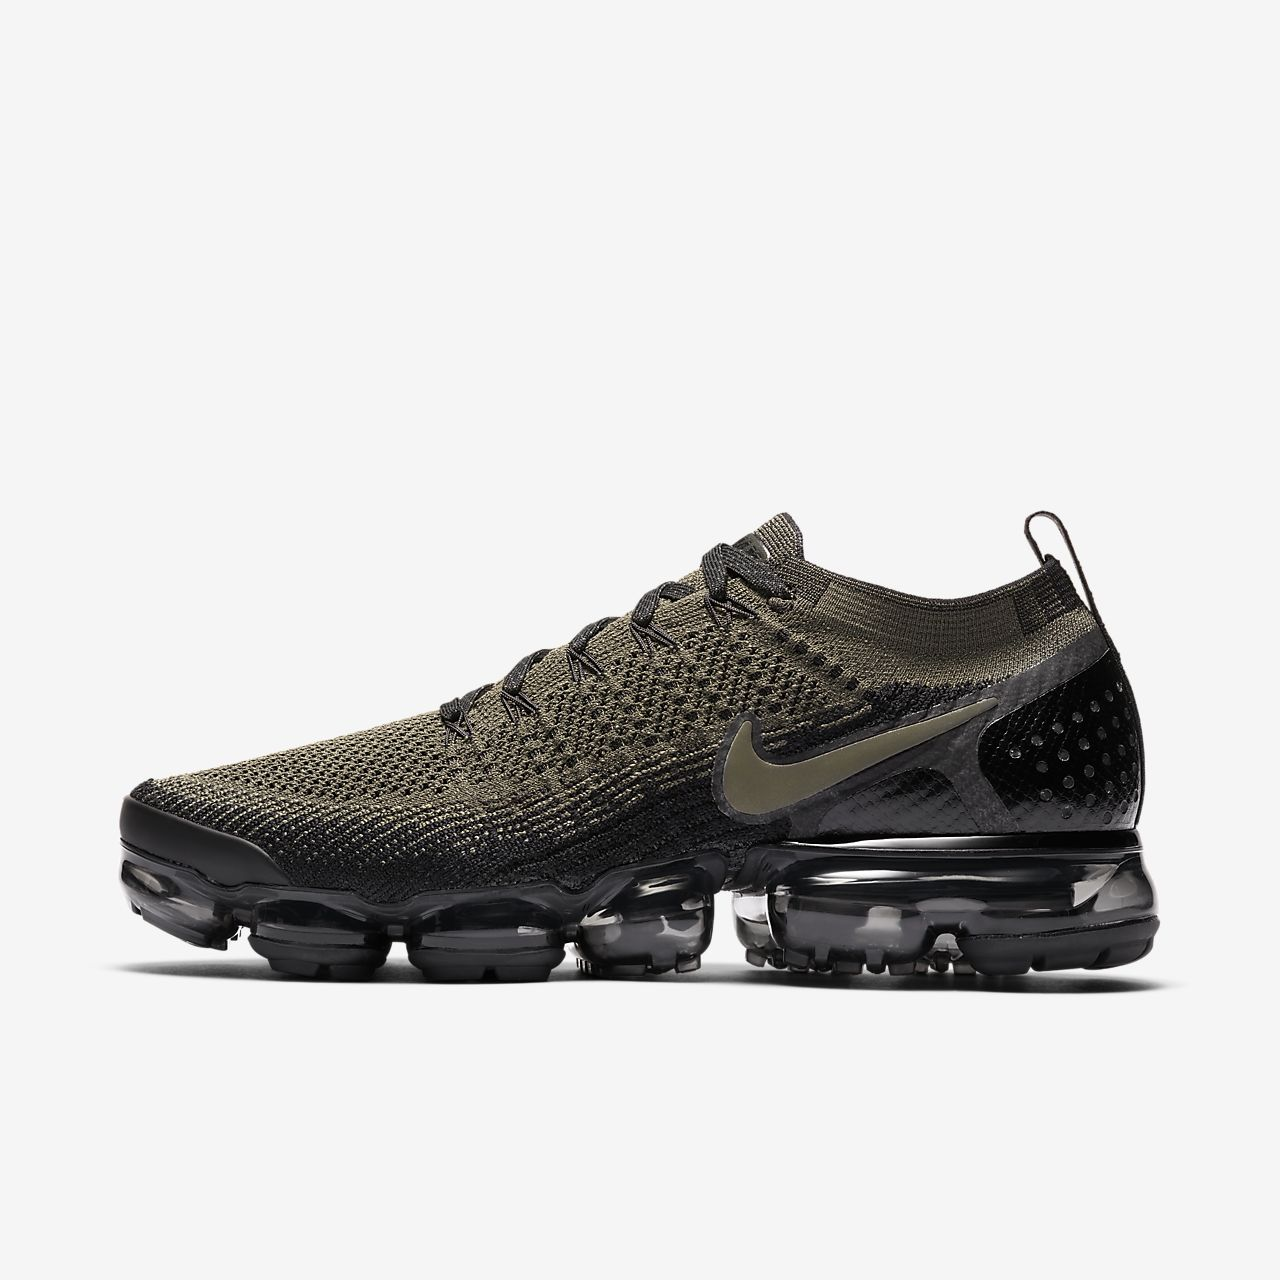 Pour Flyknit Vapormax 2 Snake Homme Air Chaussure Be Nike WqpwHnYnEt